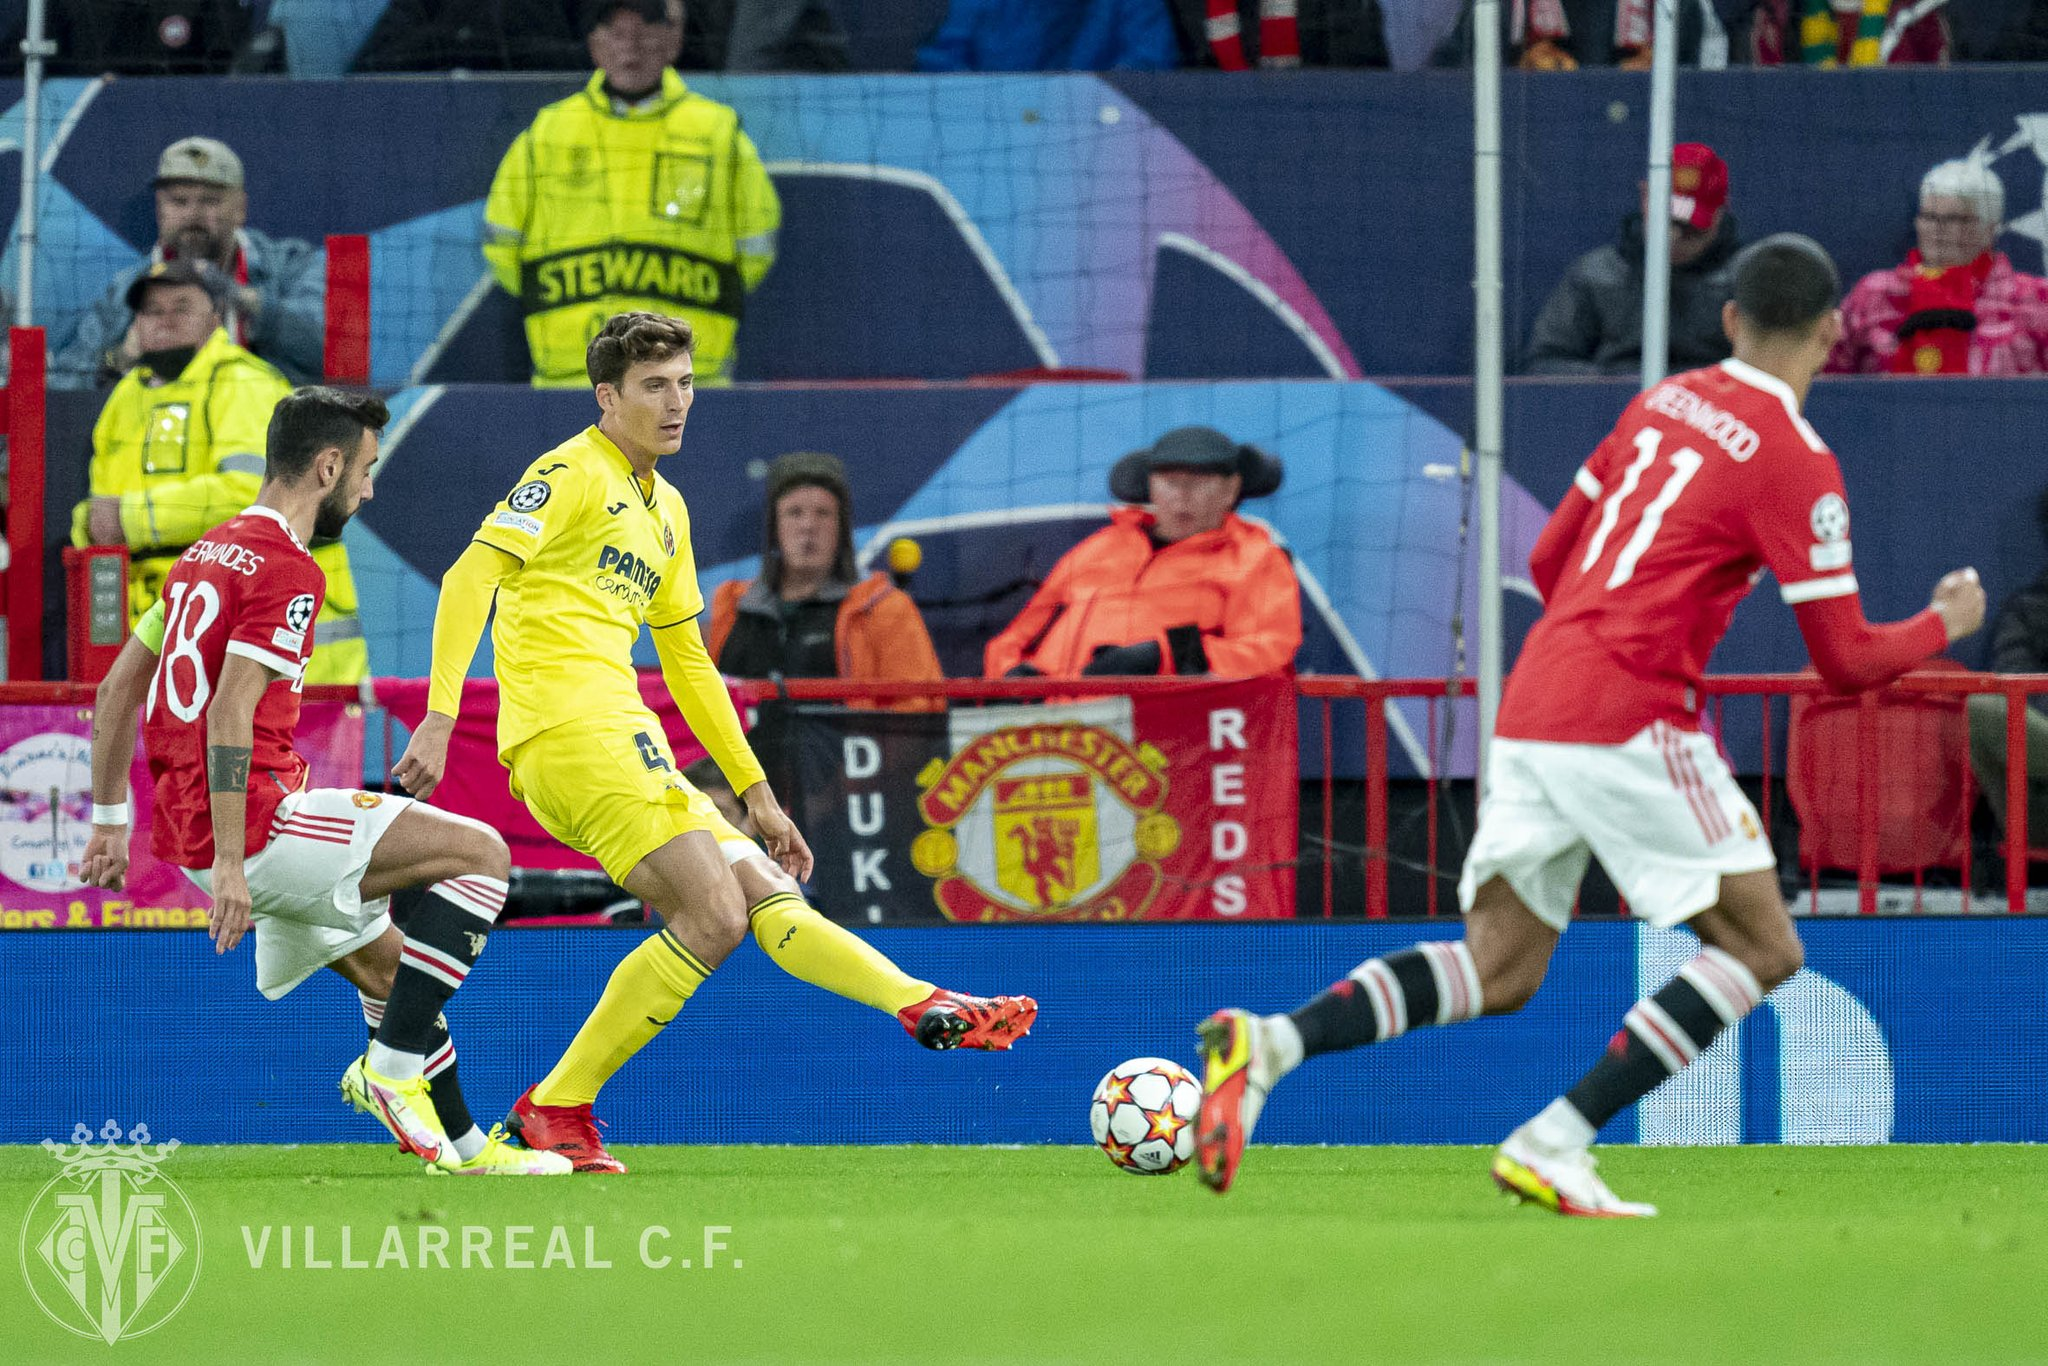 A strong confrontation between Man United against Villarreal